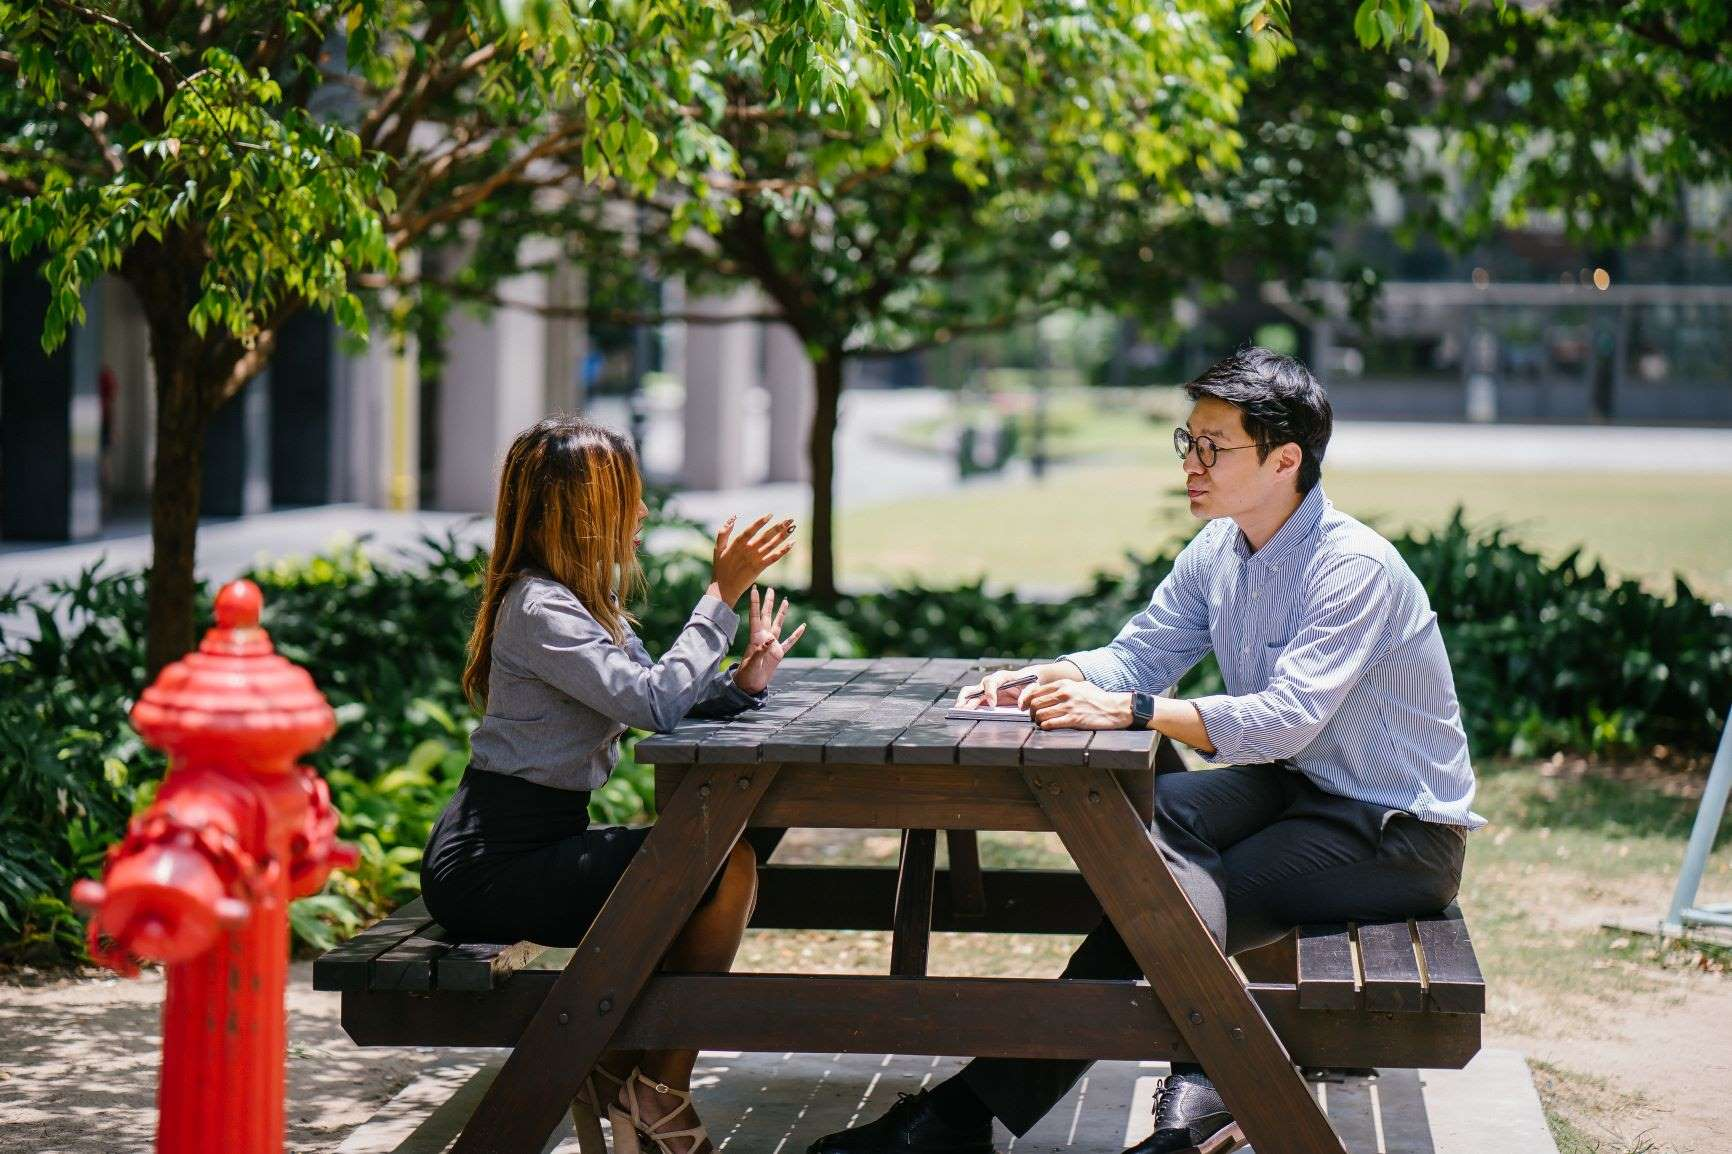 A woman and man sitting at an outdoor table, deep in conversation